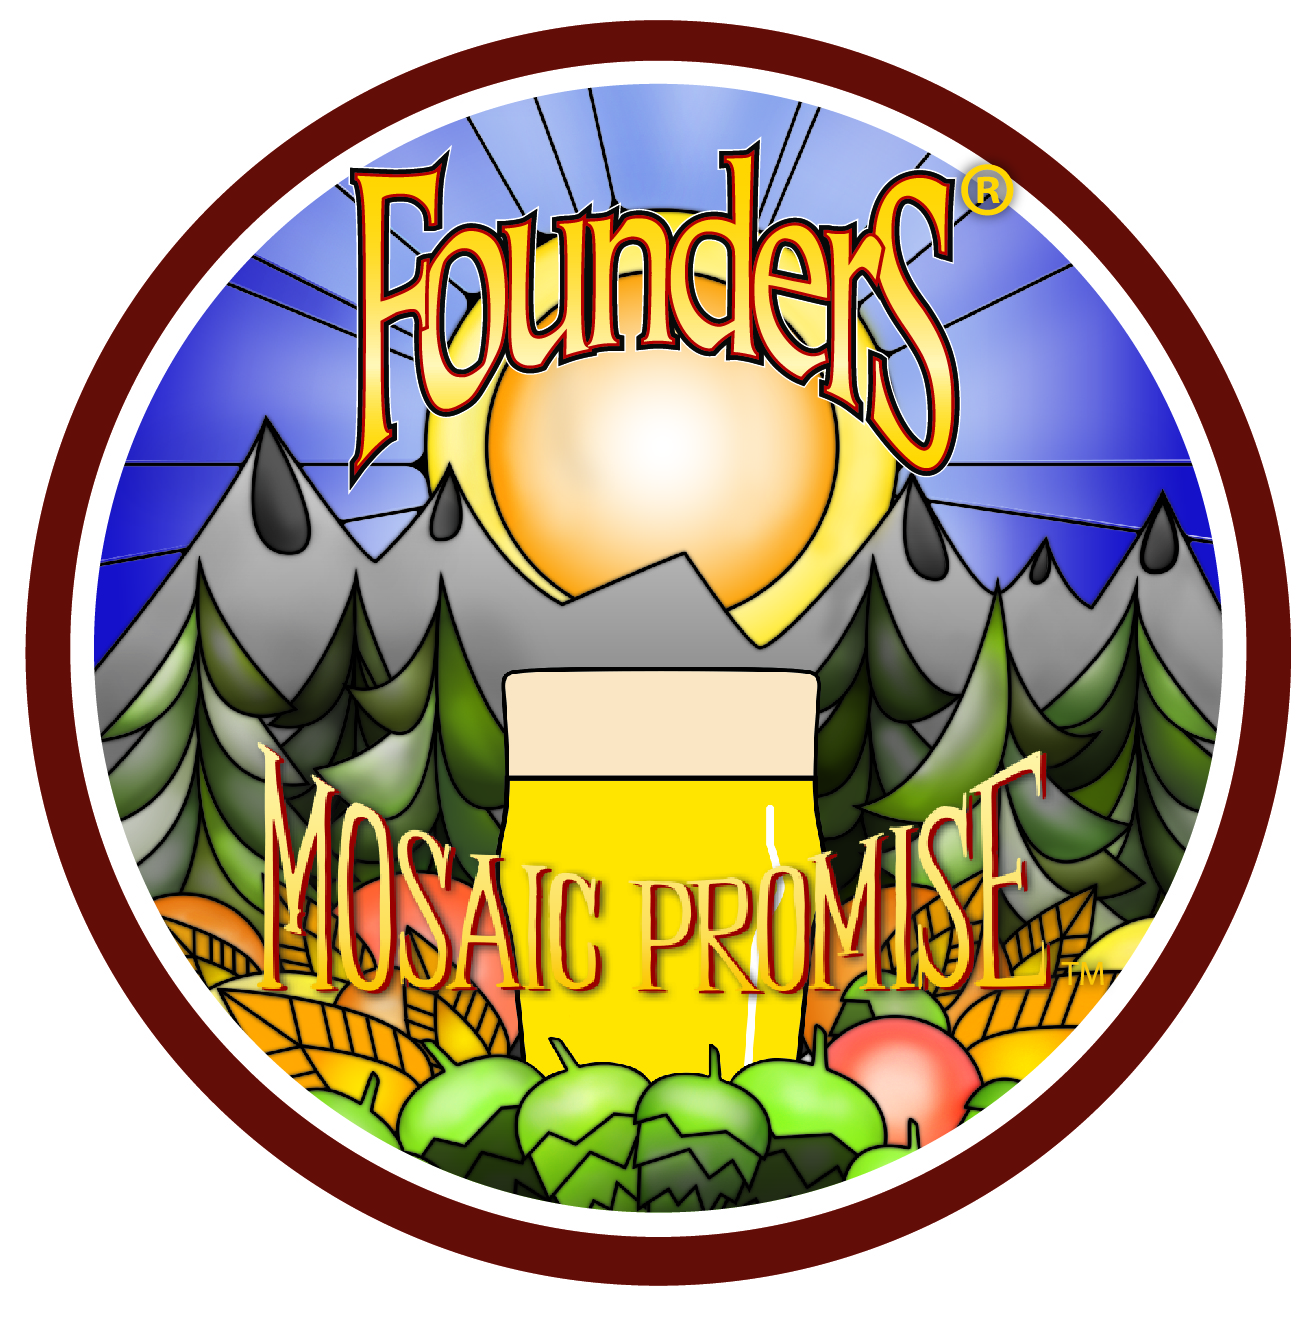 Mosaic Promise Untappd Badge